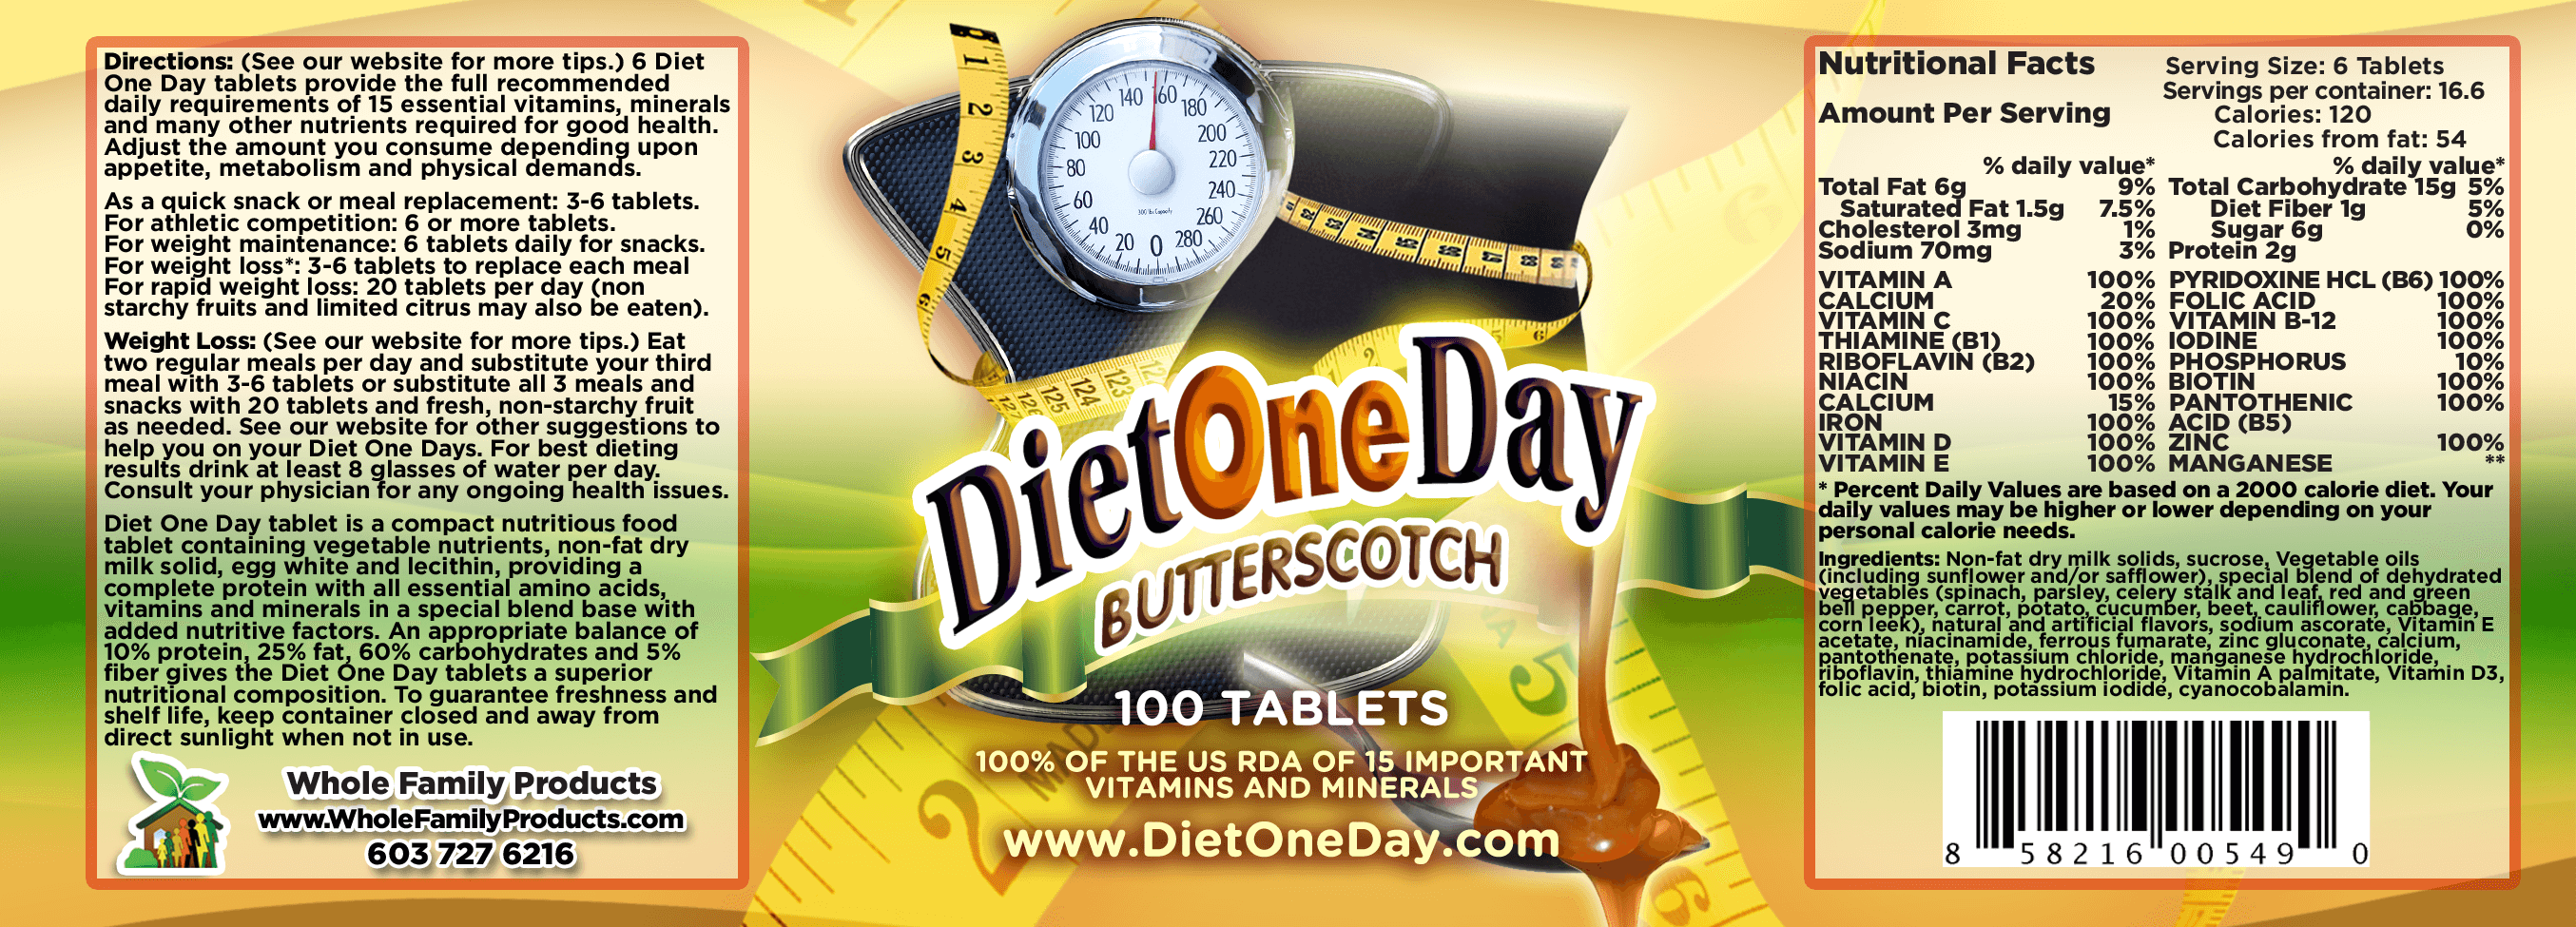 Diet One Day Wafers Butterscotch 100ct Product Label